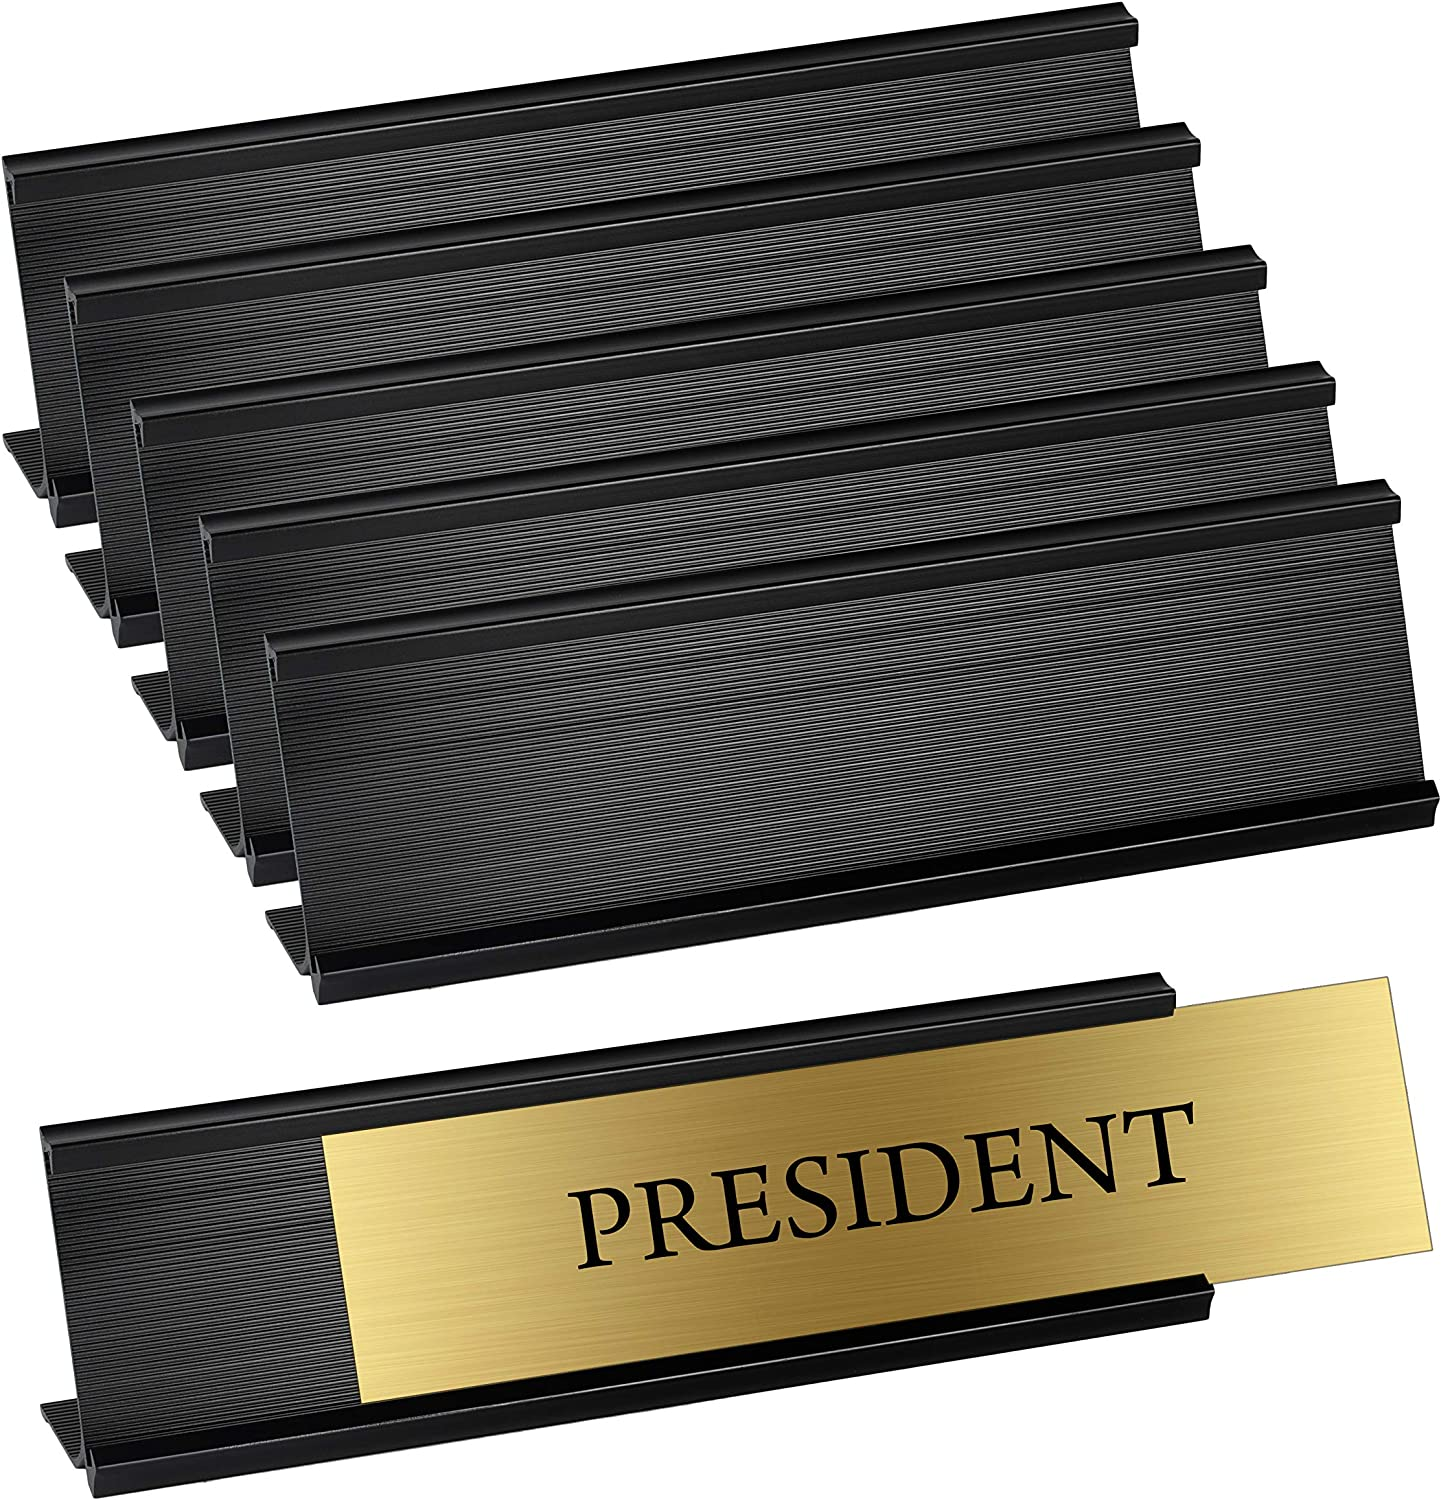 "Set of 6 – Sturdy and Elegant Black Aluminum Desk Name Plate Holder, Office Business Desk Sign Holder, 8"" X 2"" - Hardware and Inserts are Not Included"